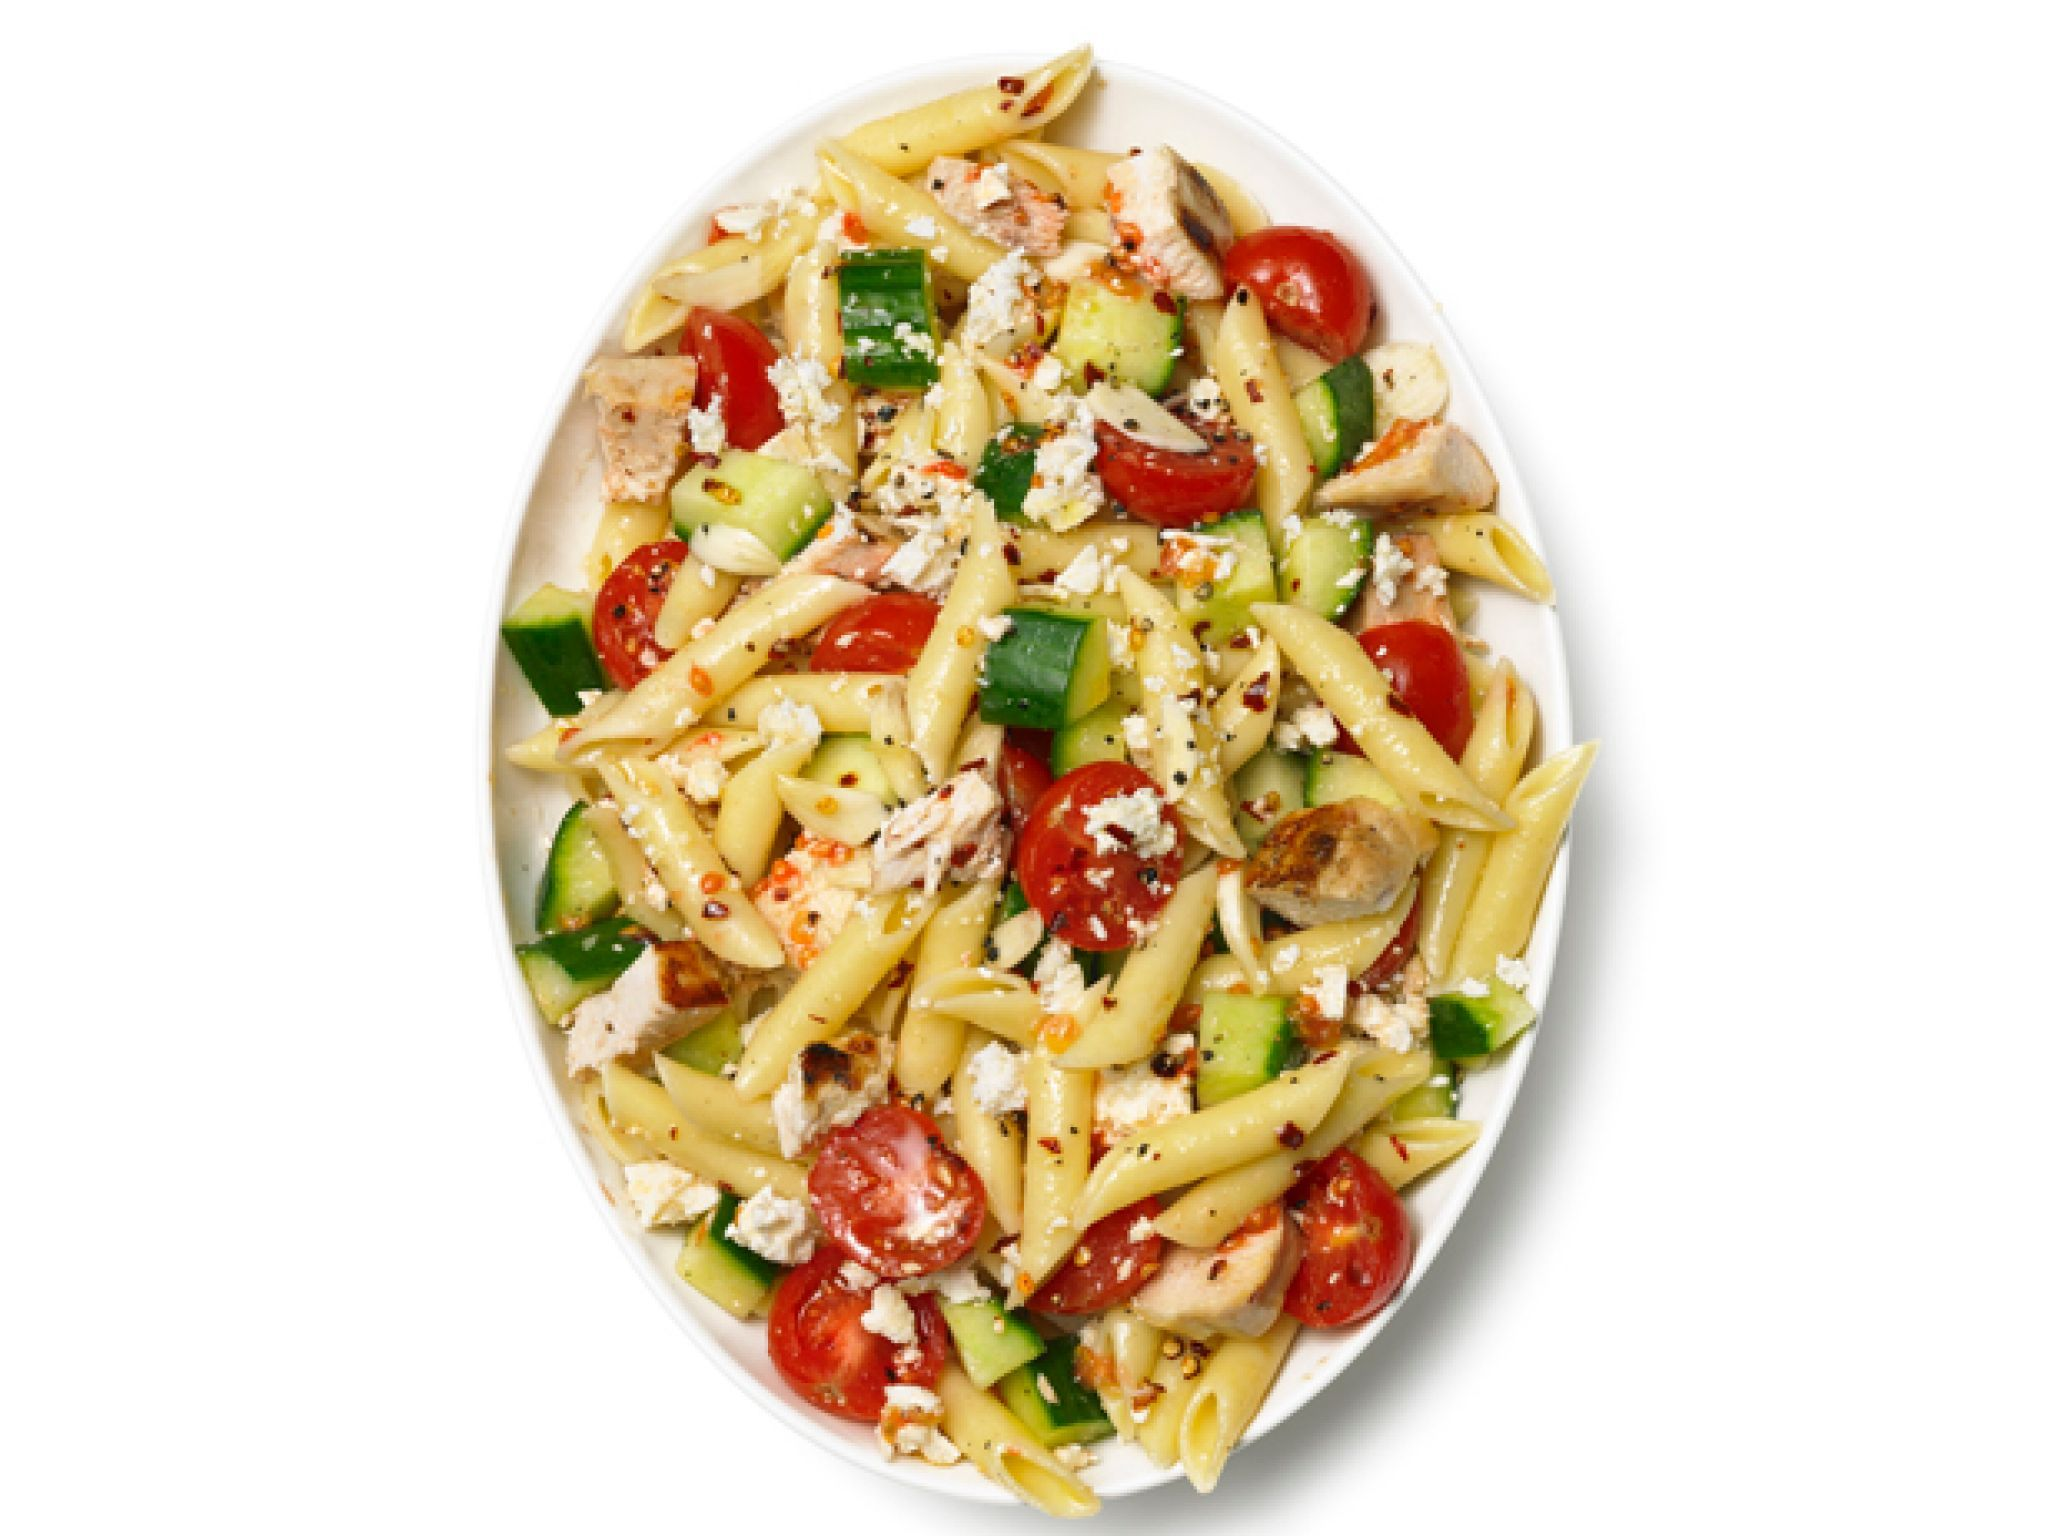 Pasta salad with chicken cucumber cherry tomatoes and feta pasta salad with chicken cucumber cherry tomatoes and feta recipe pasta salad pasta and salad forumfinder Image collections